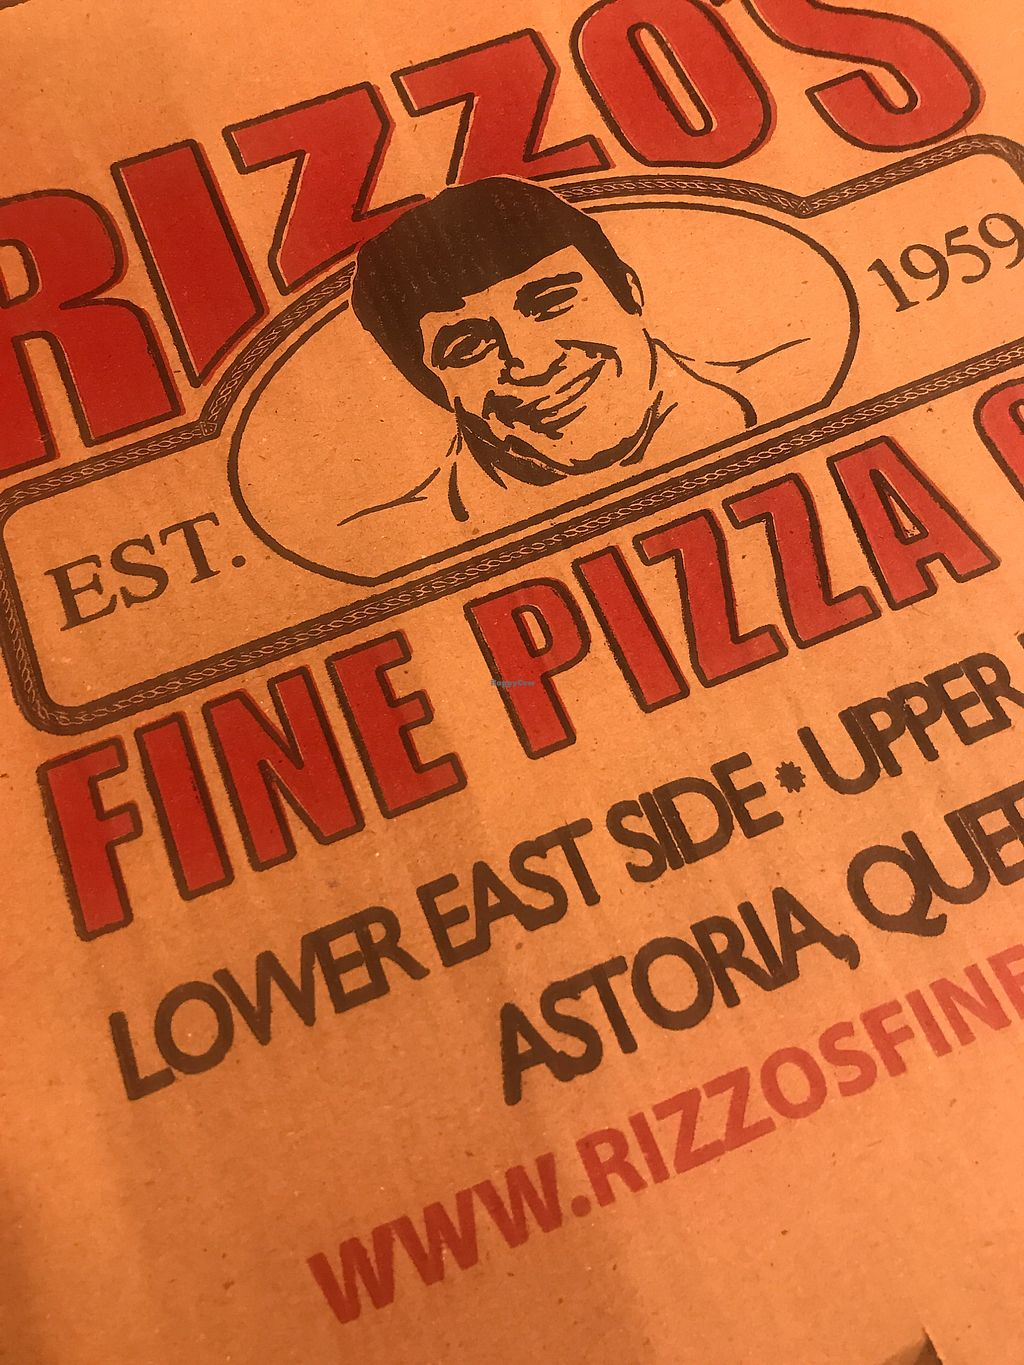 """Photo of Rizzo's Fine Pizza  by <a href=""""/members/profile/The%20London%20Vegan"""">The London Vegan</a> <br/>Since 1959! NY's finest?? Ok  <br/> November 13, 2017  - <a href='/contact/abuse/image/103896/324972'>Report</a>"""